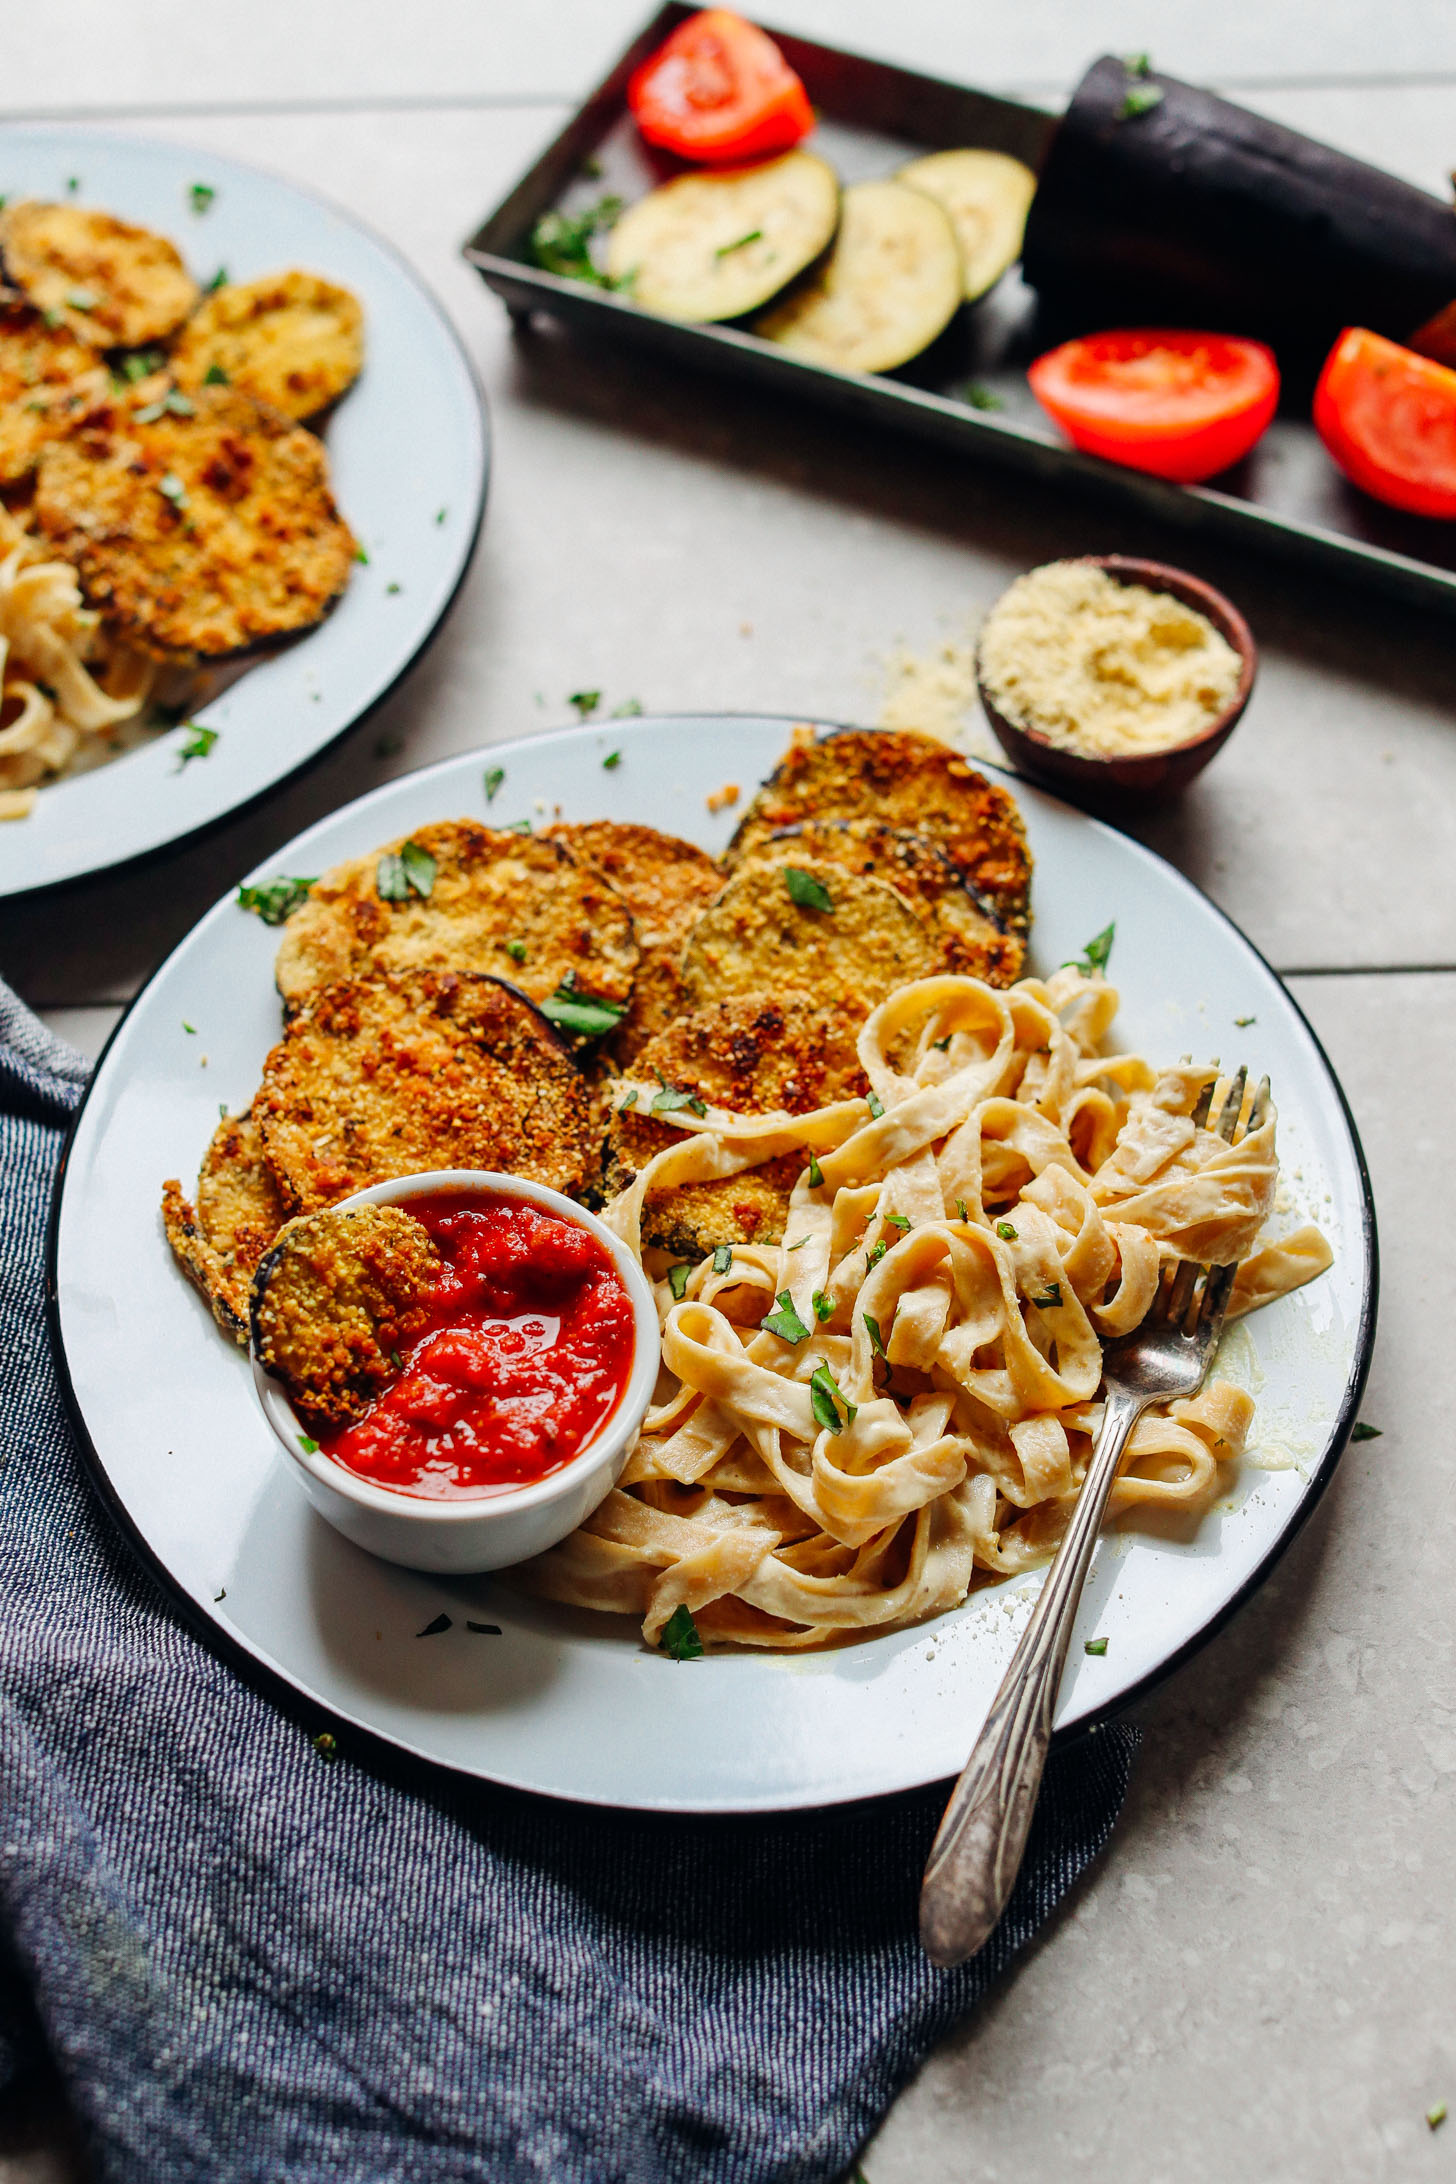 AMAZING Vegan Gluten Free CRISPY Eggplant Parmesan! 10 ing, 30 minutes, SO tasty! #vegan #plantbased #healthy #italian #eggplant #recipe #glutenfree #dinner #minimalistbaker